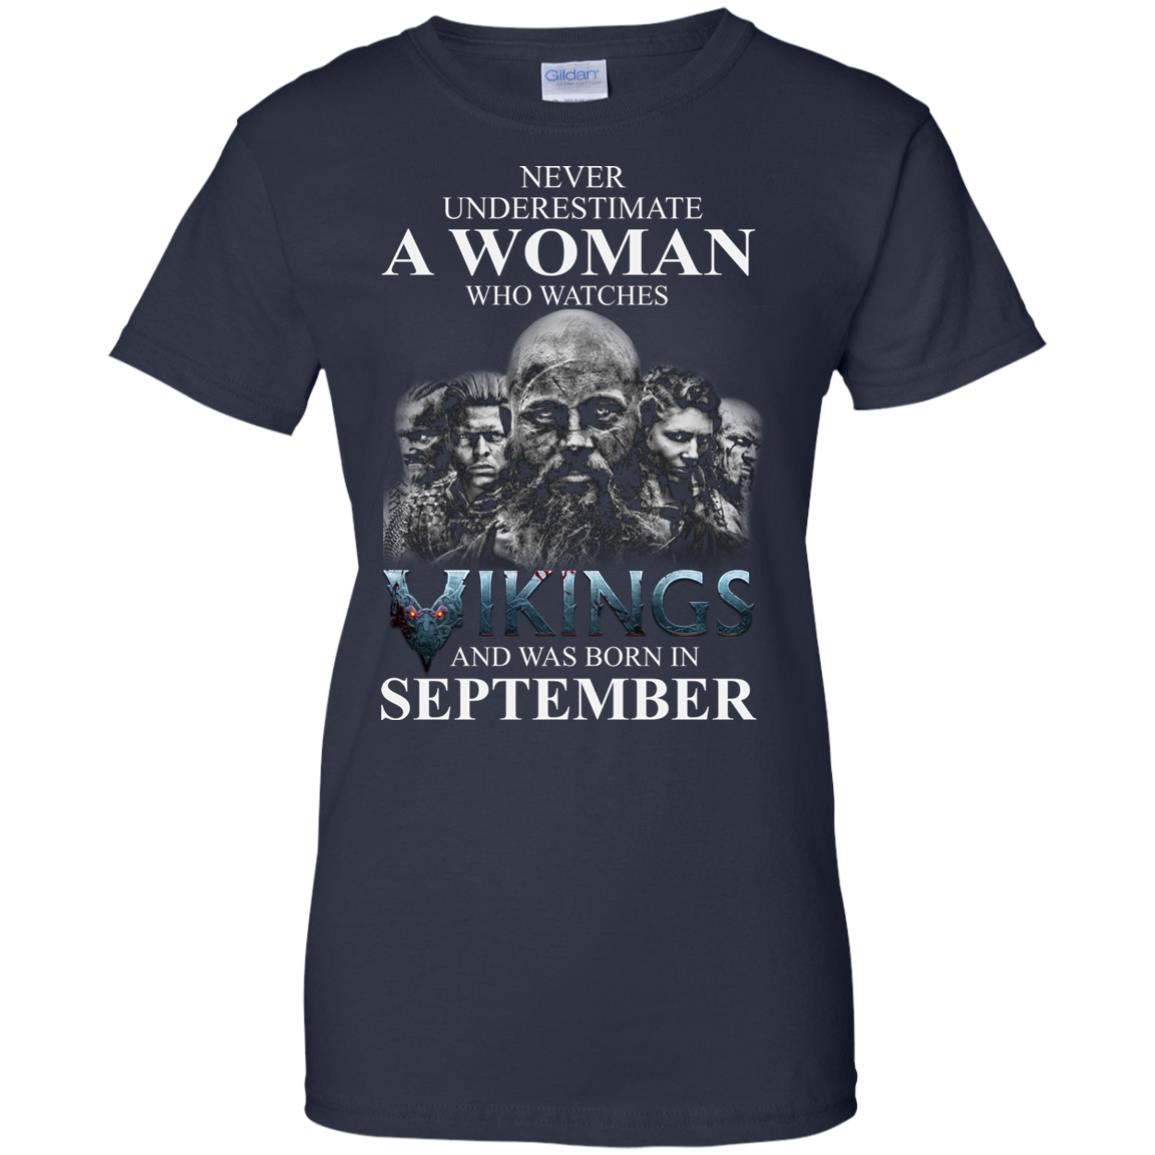 image 1266 - Never Underestimate A woman who watches Vikings and was born in September shirt